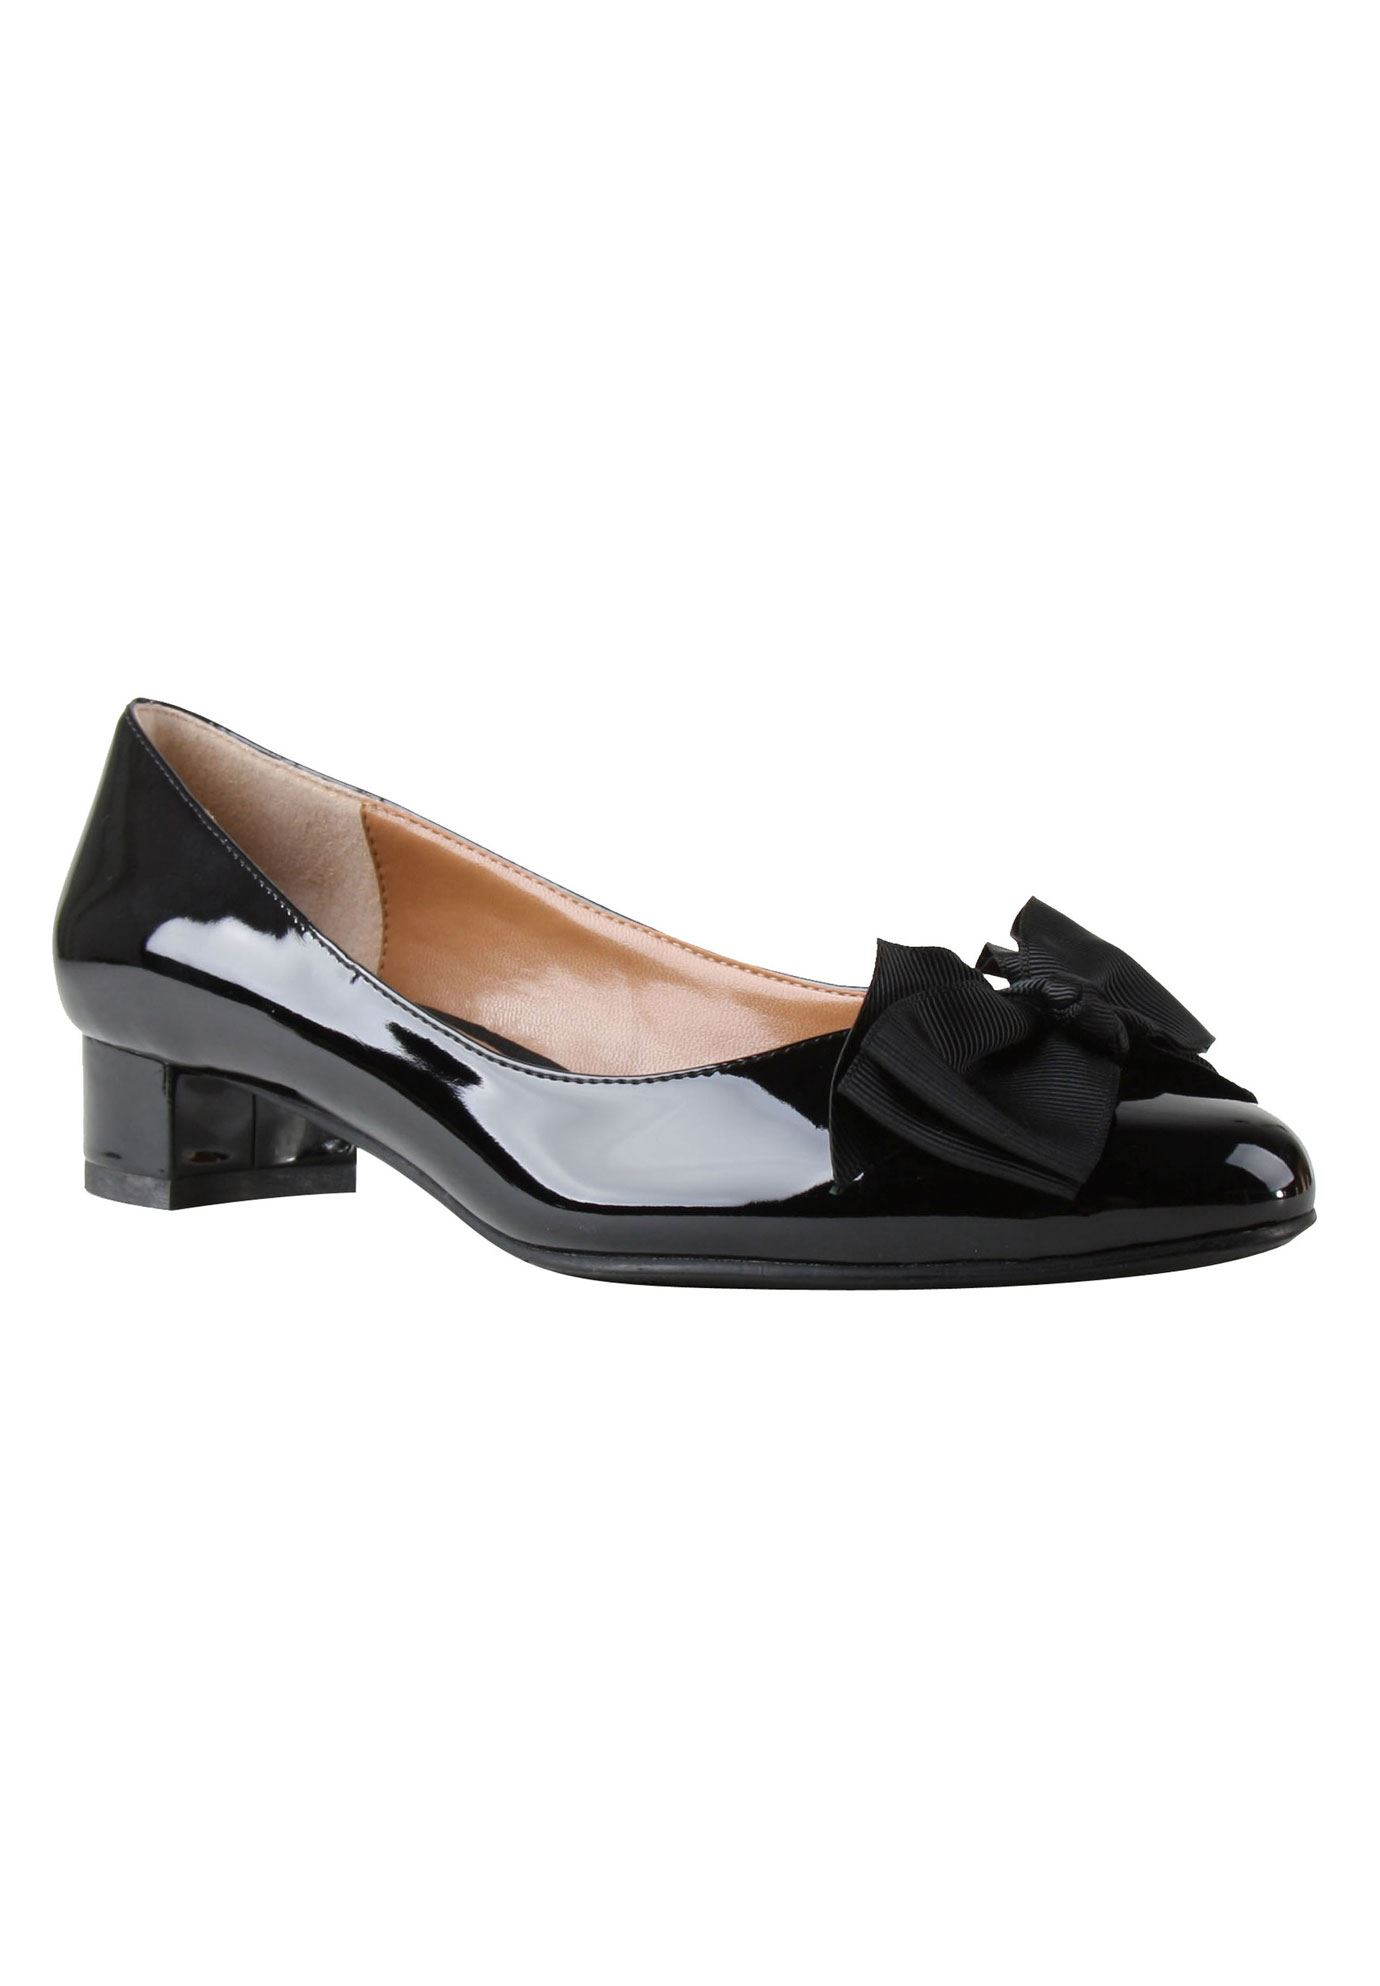 0435989c291 Cameo Pump by J. Renee - Women's Plus Size Clothing | Products ...